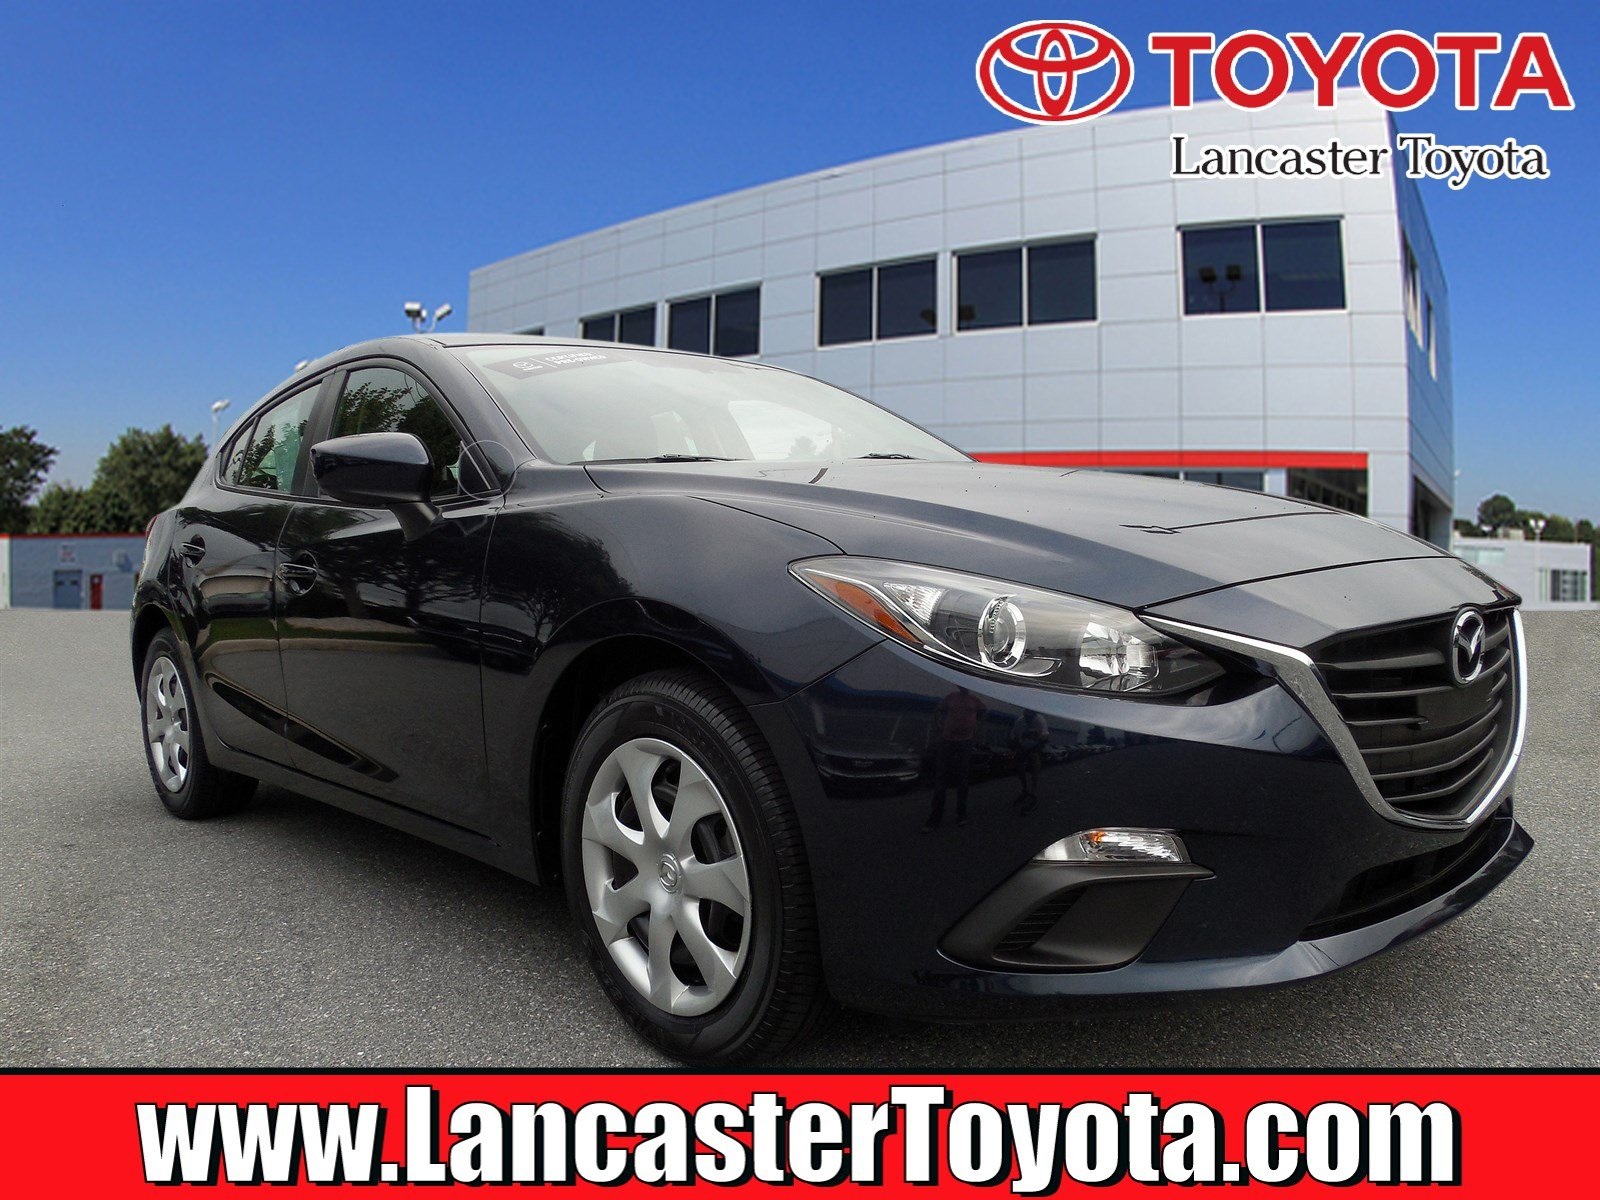 Mazda 3 Service Manual: Floor Covering RemovalInstallation